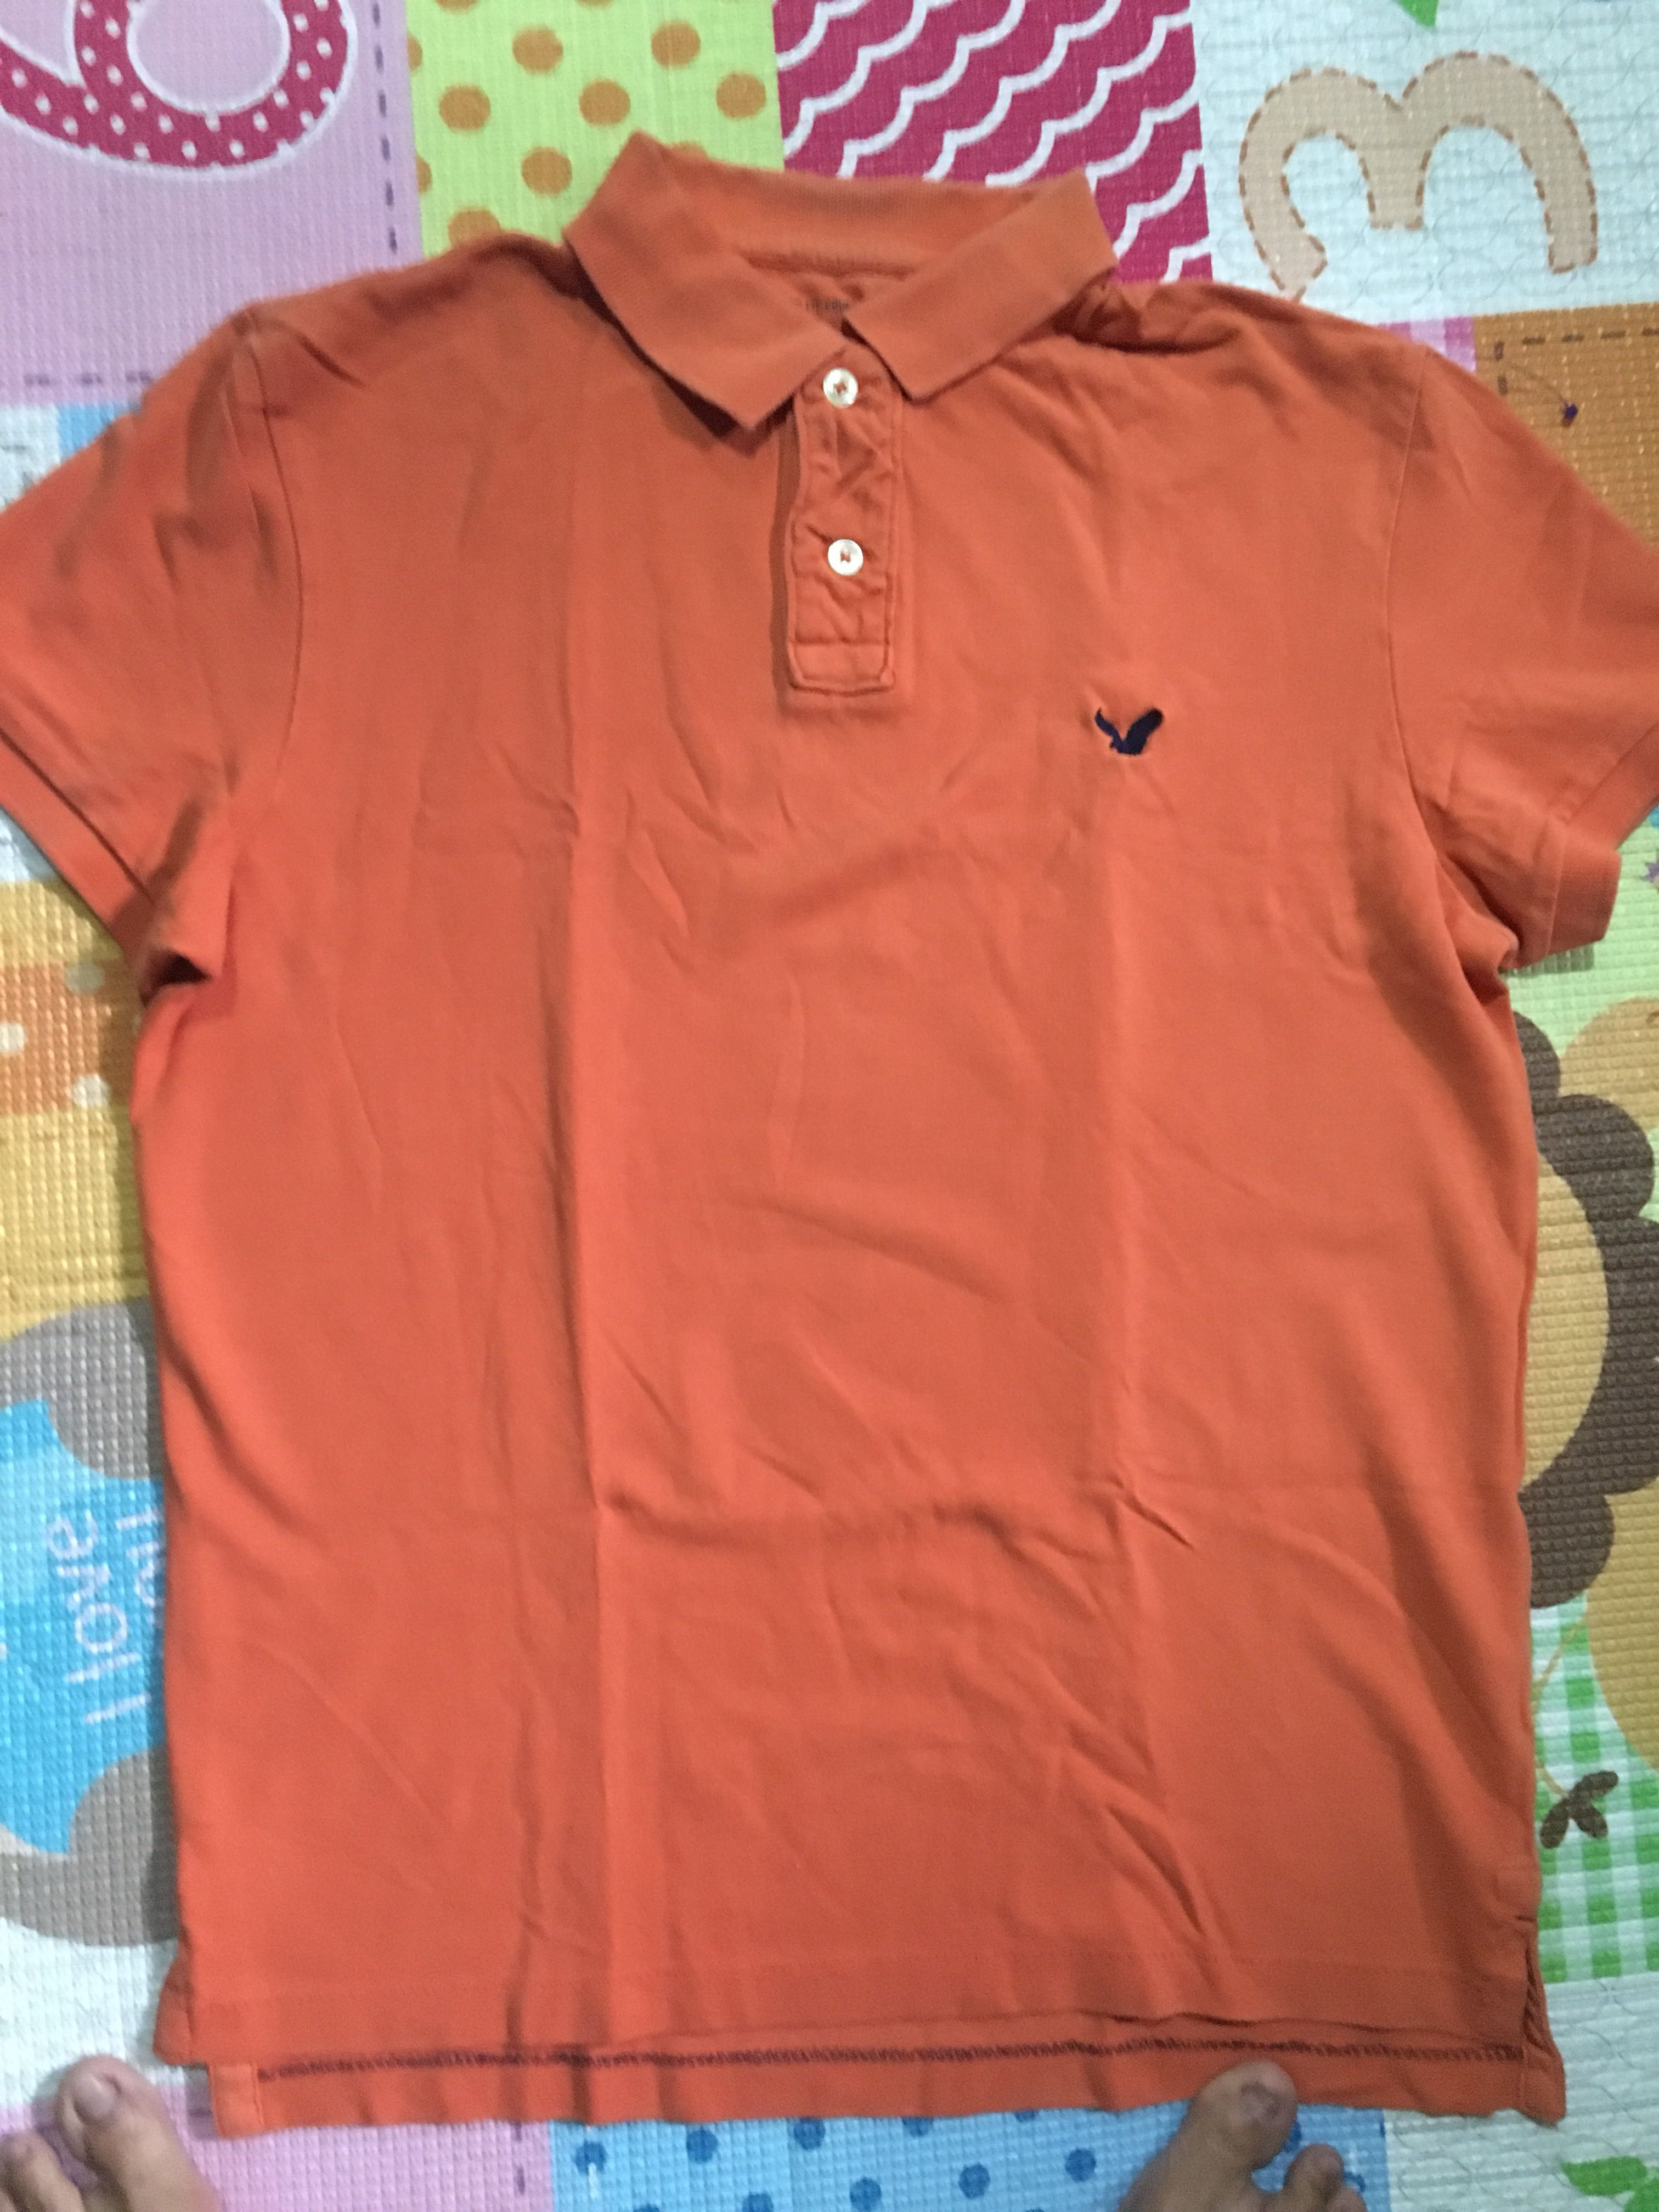 84946d22d86 Authentic American Eagle Outfitters Polo Shirt, Men's Fashion, Clothes,  Tops on Carousell